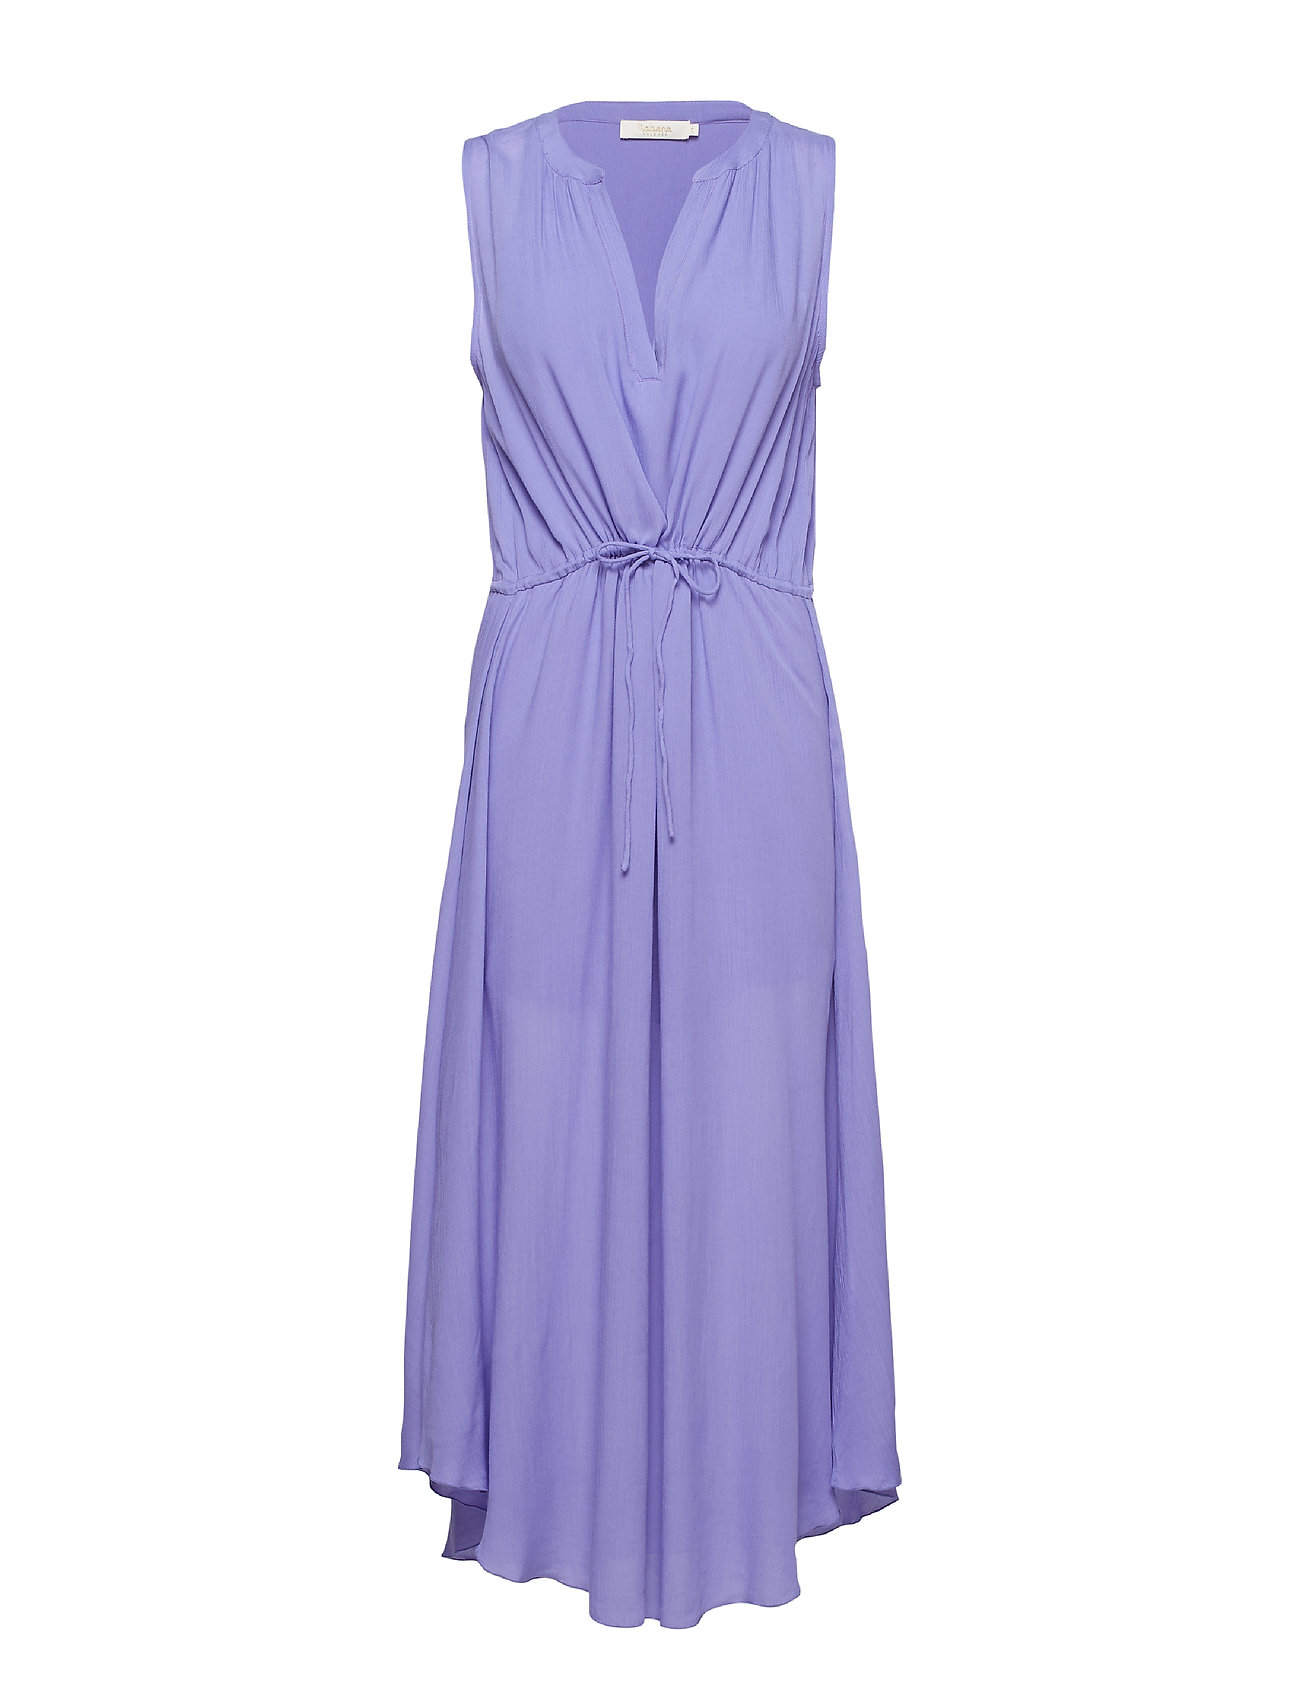 Rabens Saloner Crinkle drawstring dress - LAVENDER